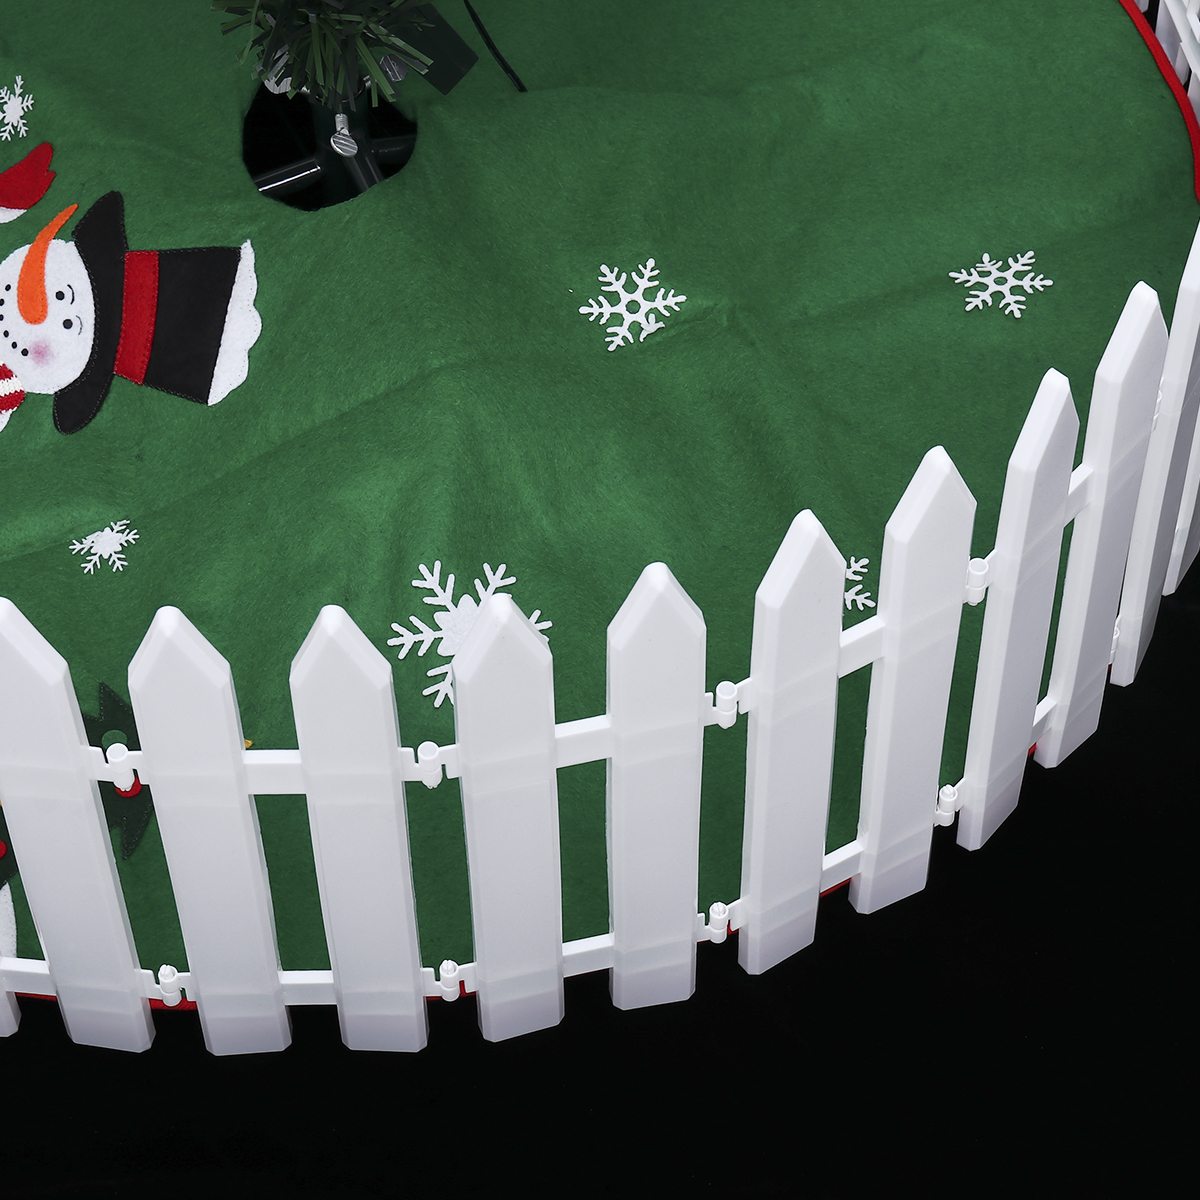 25 Pieces Tinksky White Plastic Picket Fence Miniature Home Garden Christmas Xmas Tree Wedding Party Decoration